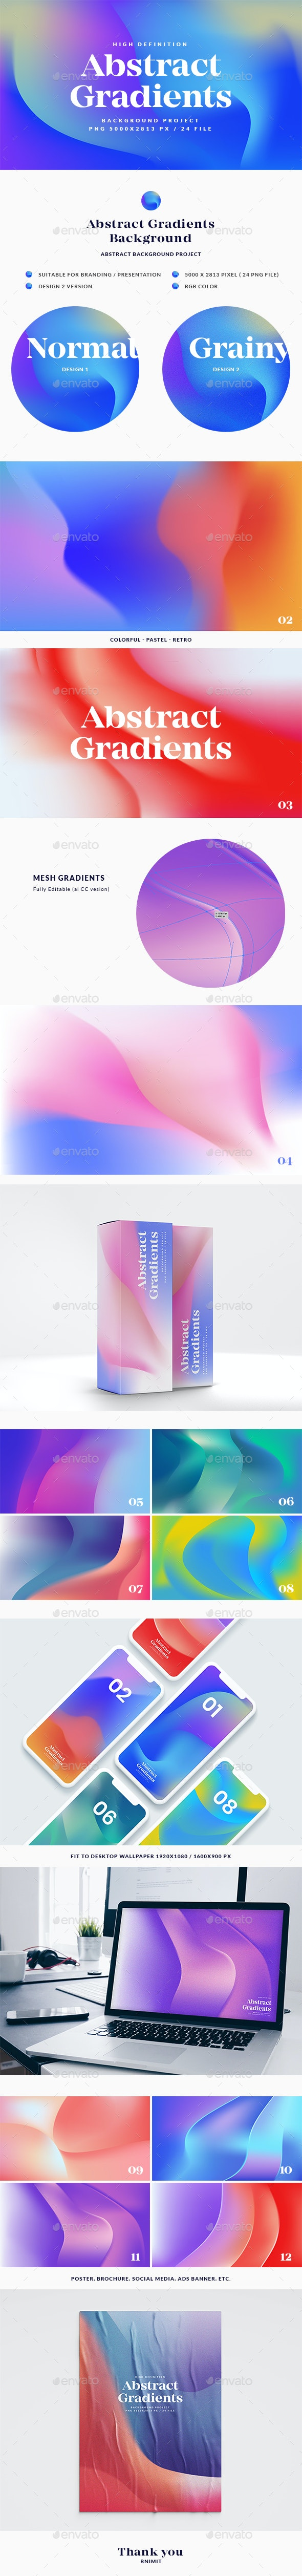 Abstract Gradients Background - Abstract Backgrounds